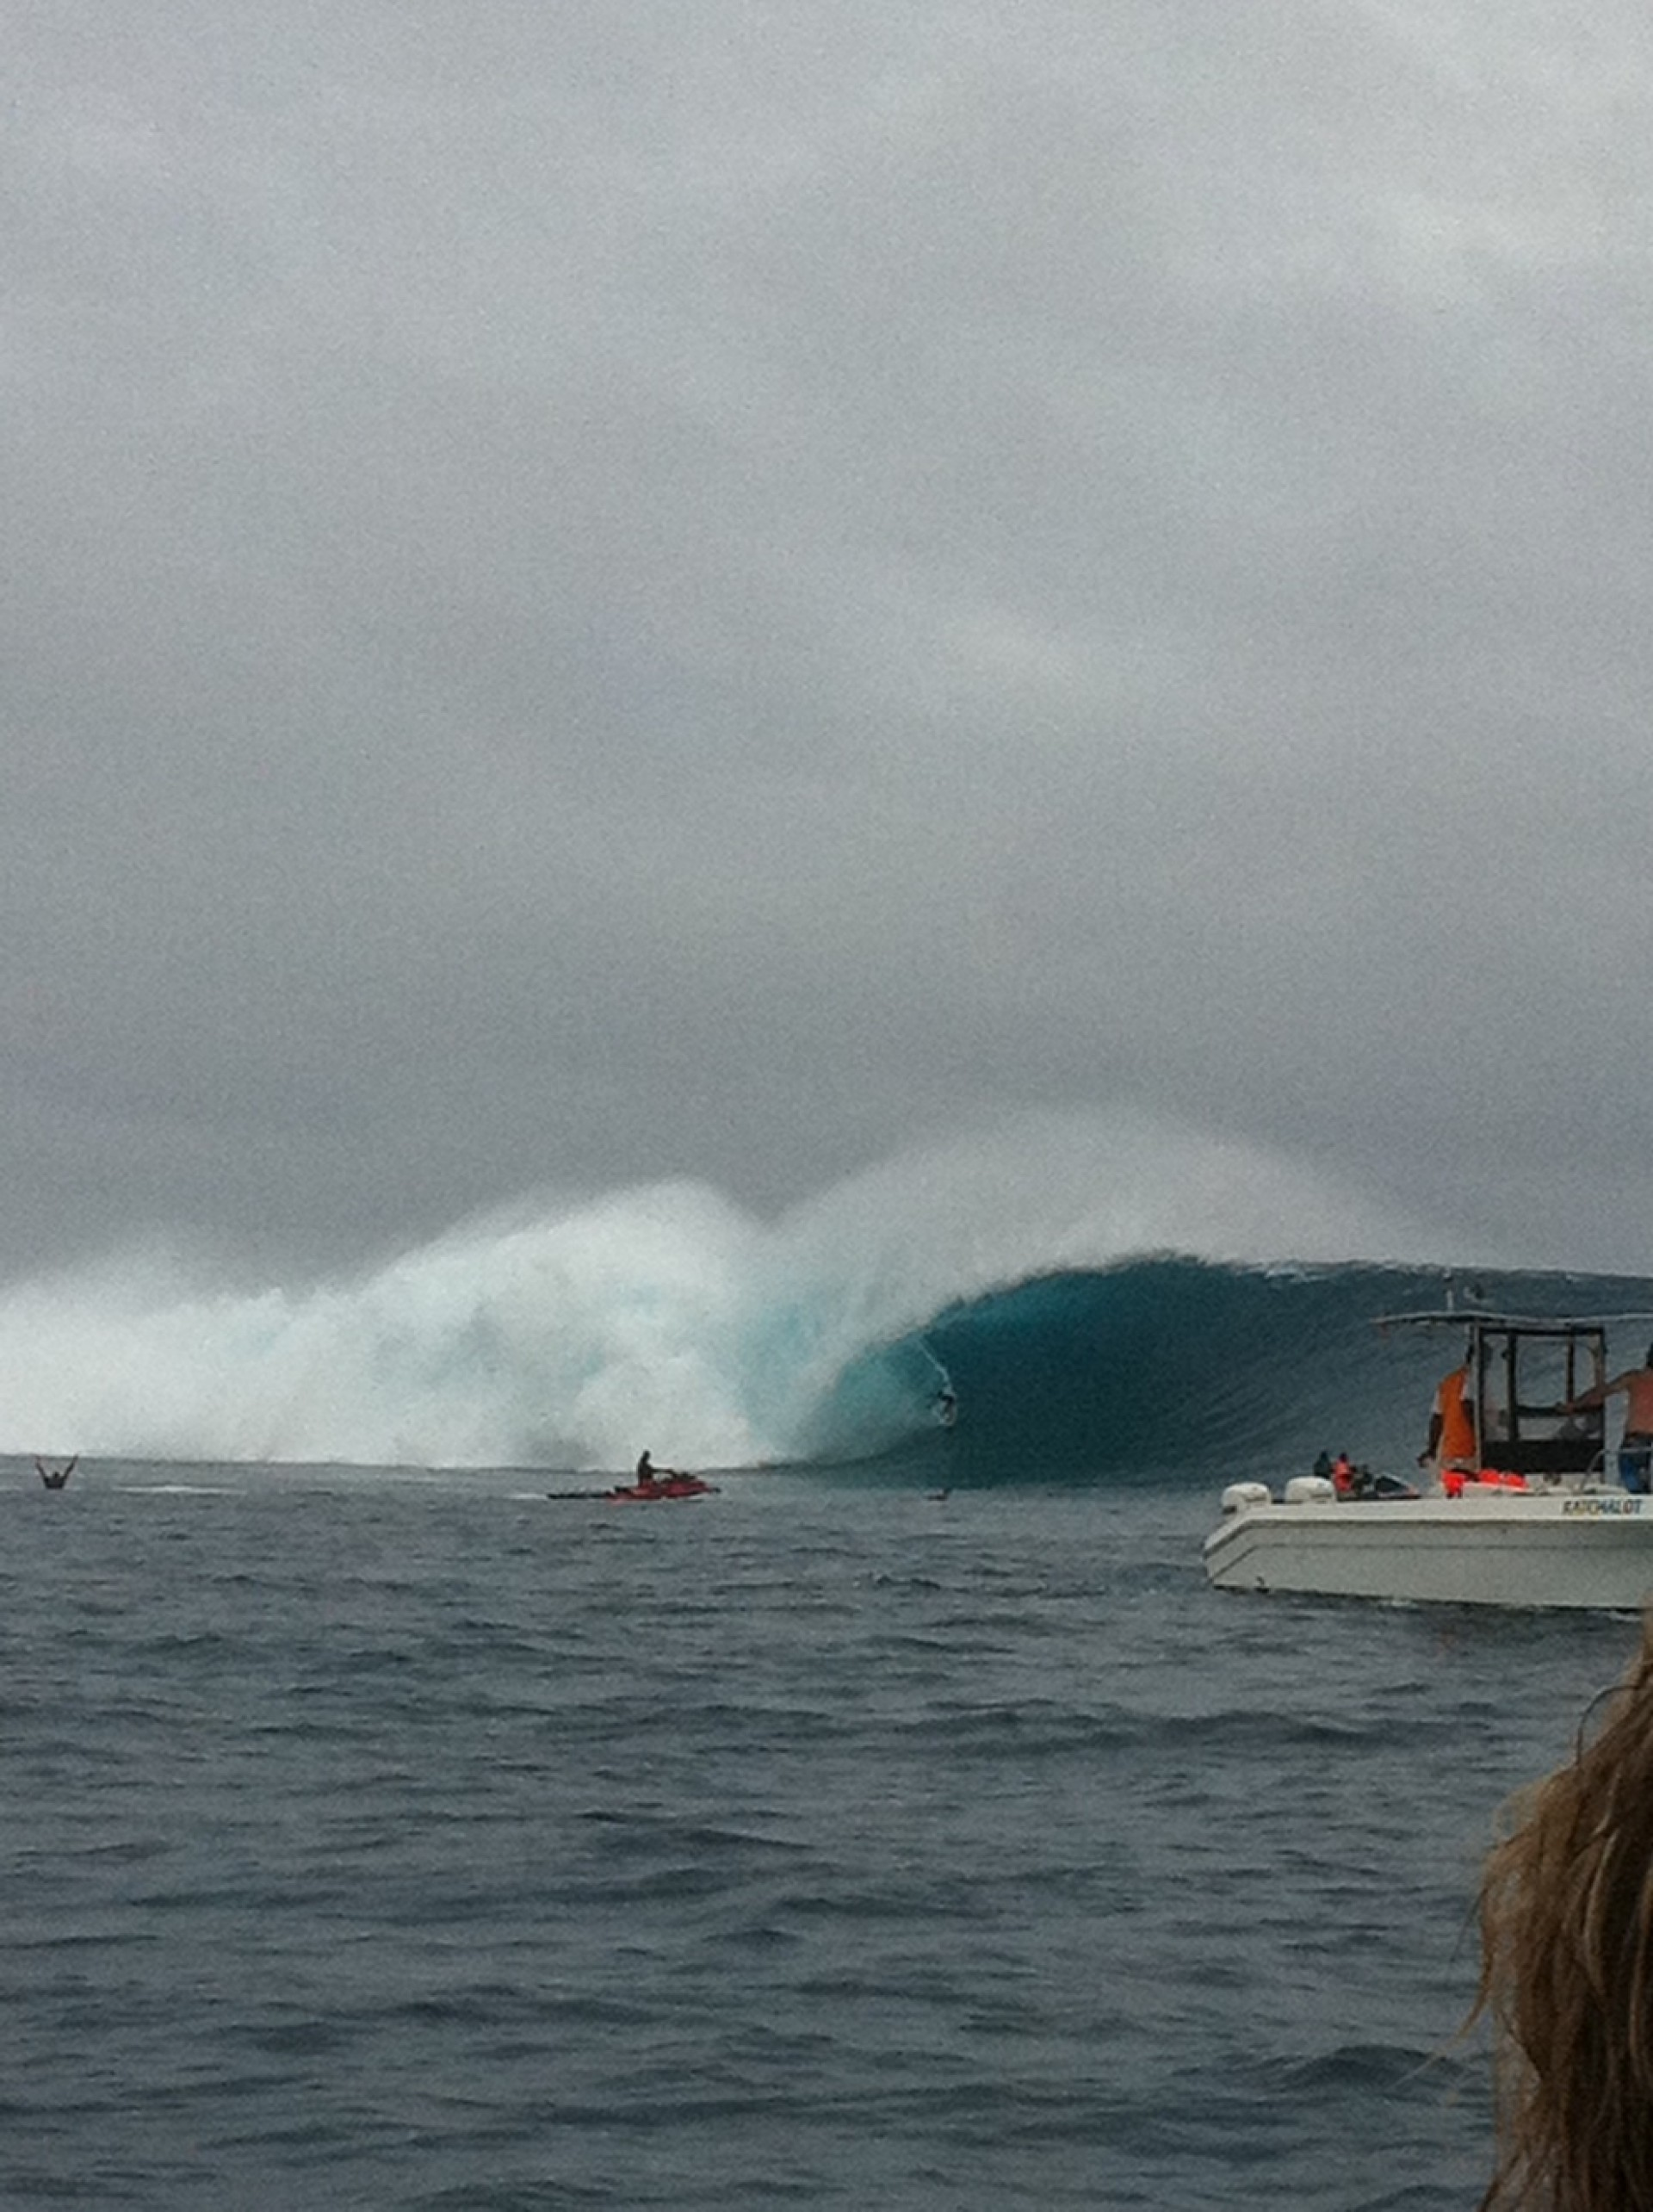 becsjade's photo of Tavarua - Cloudbreak